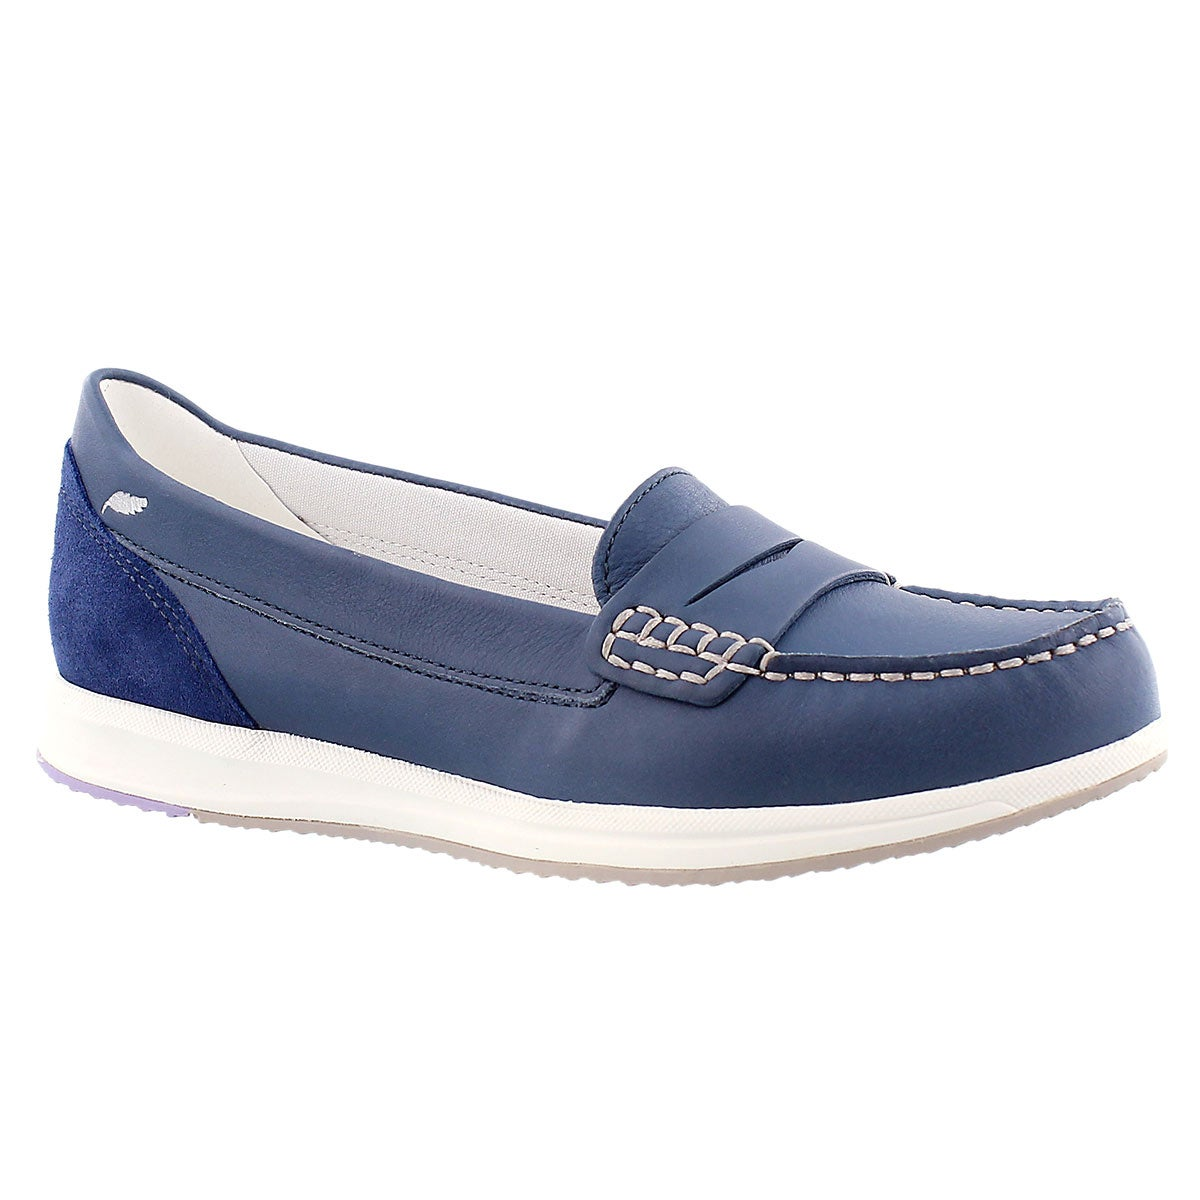 Women's AVERY denim slip on casual loafers